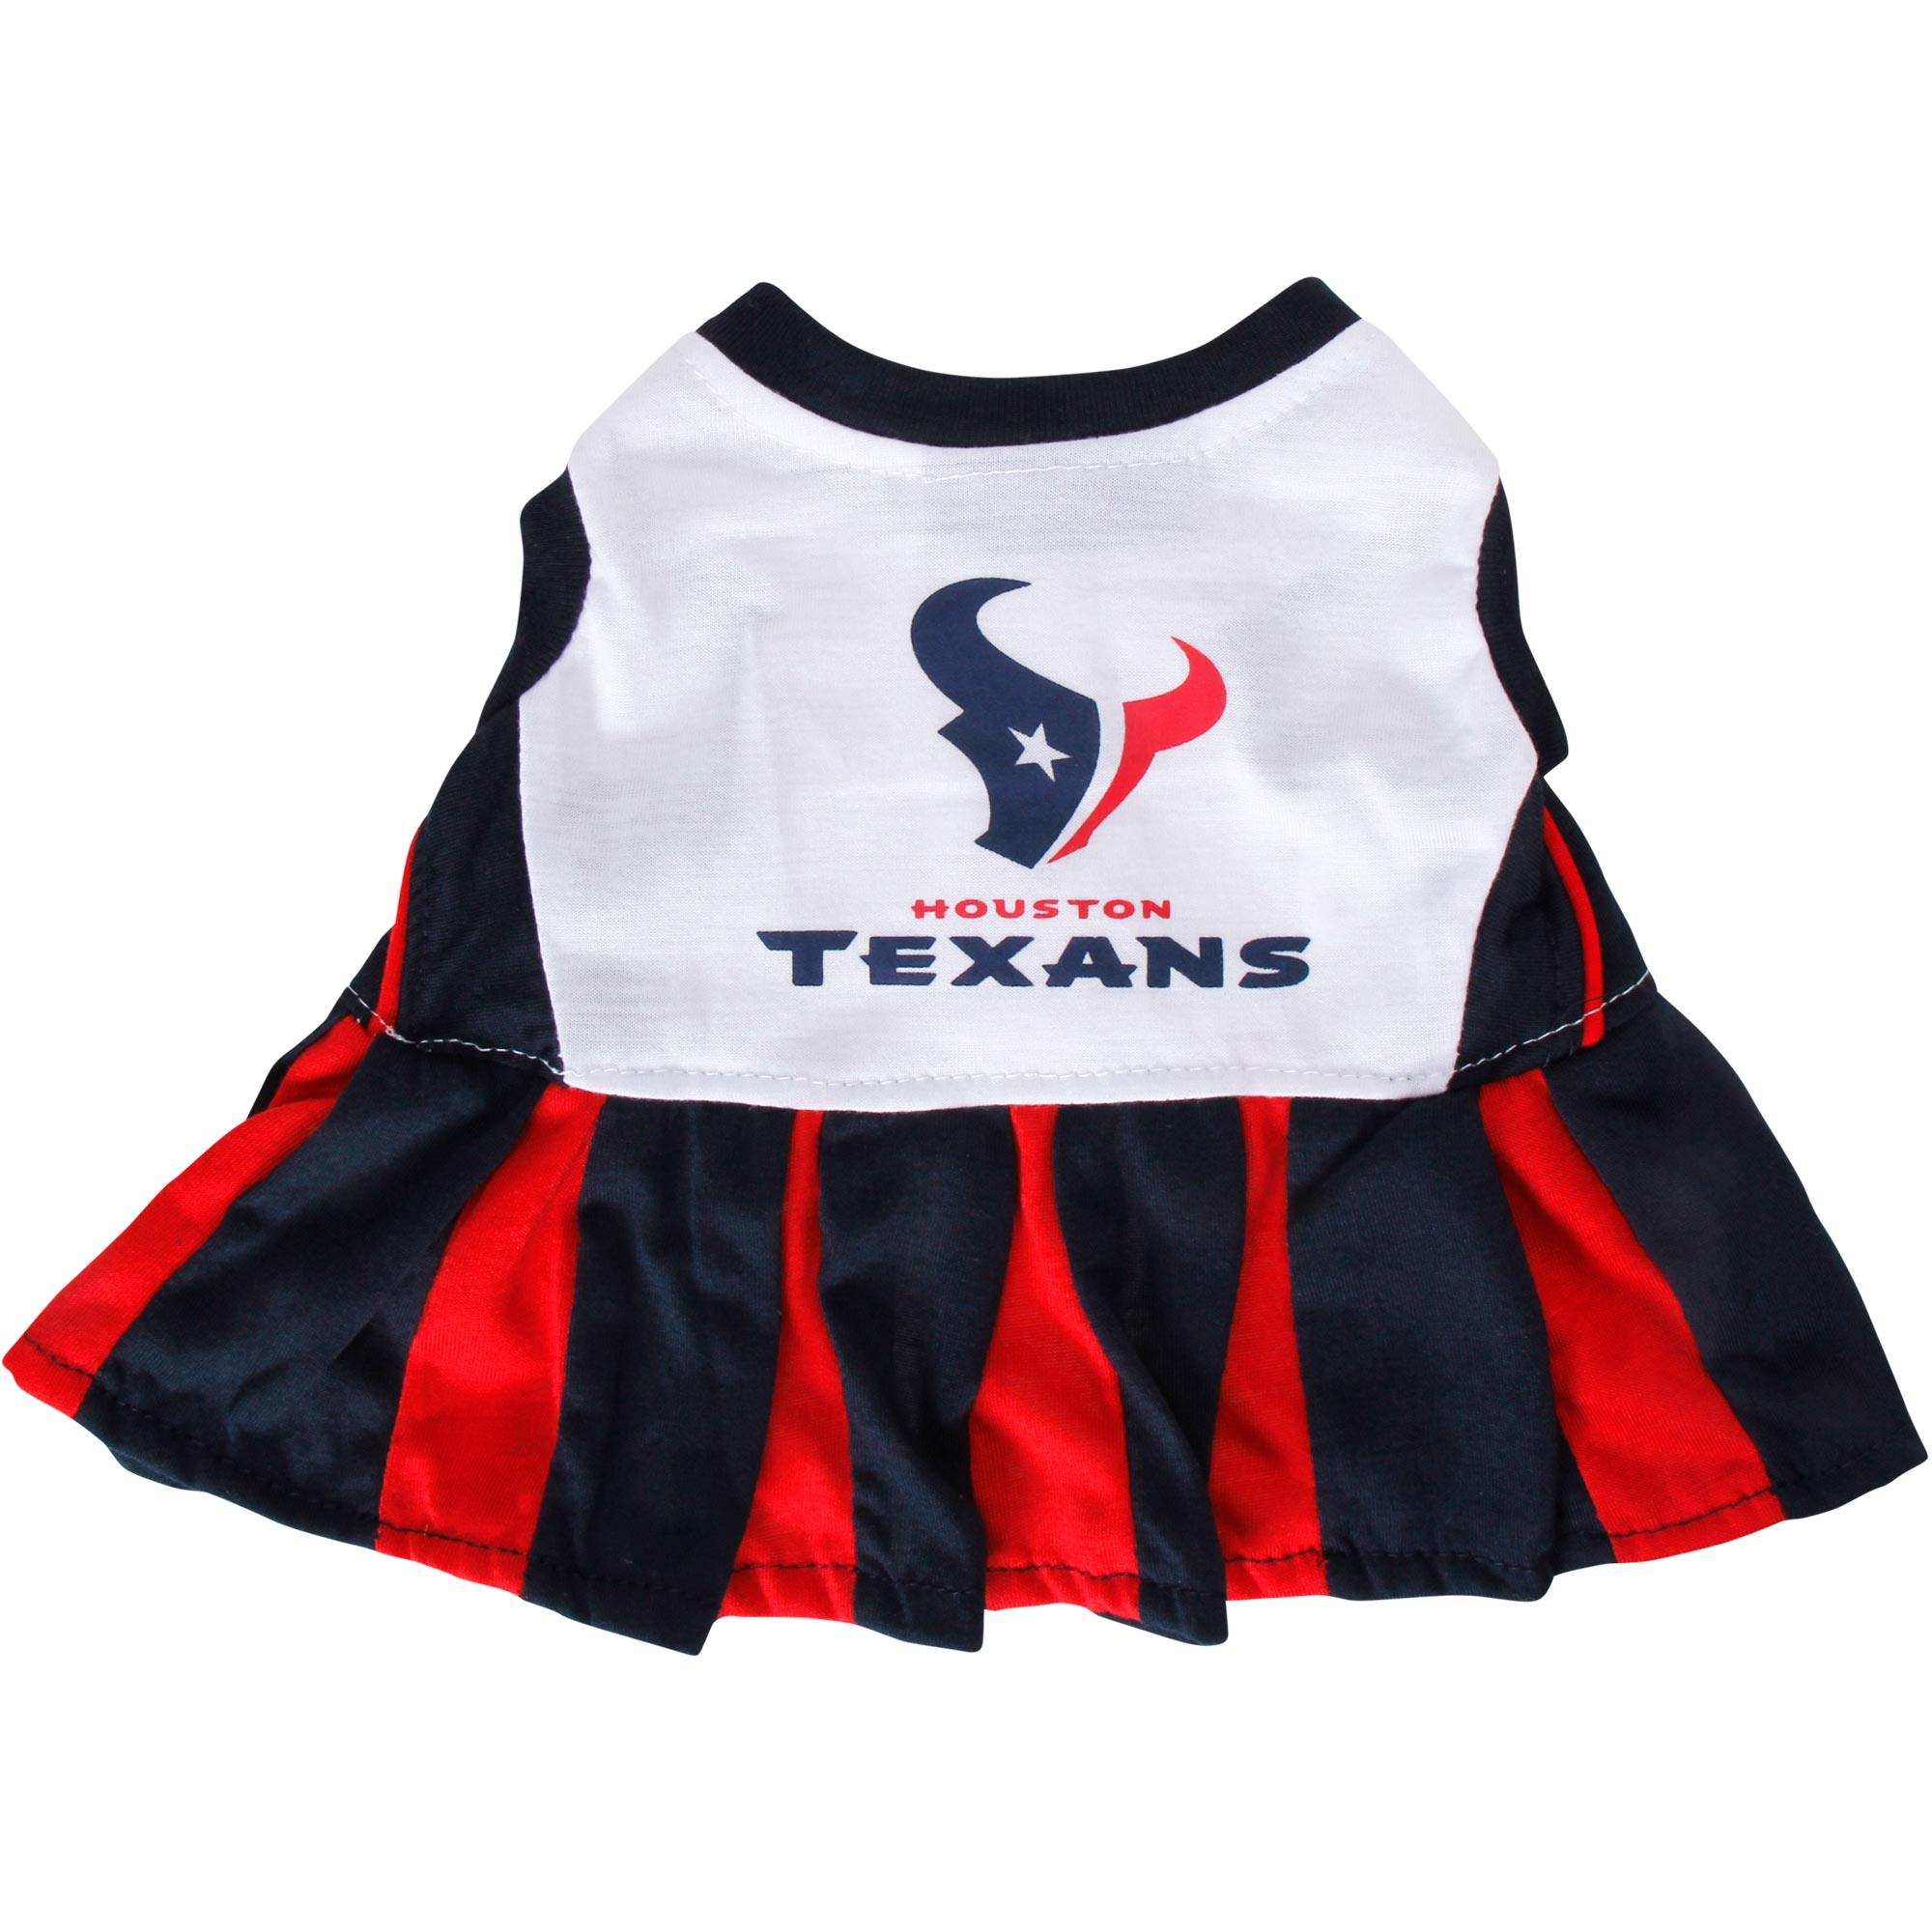 Houston Texans Cheerleader Pet Uniform